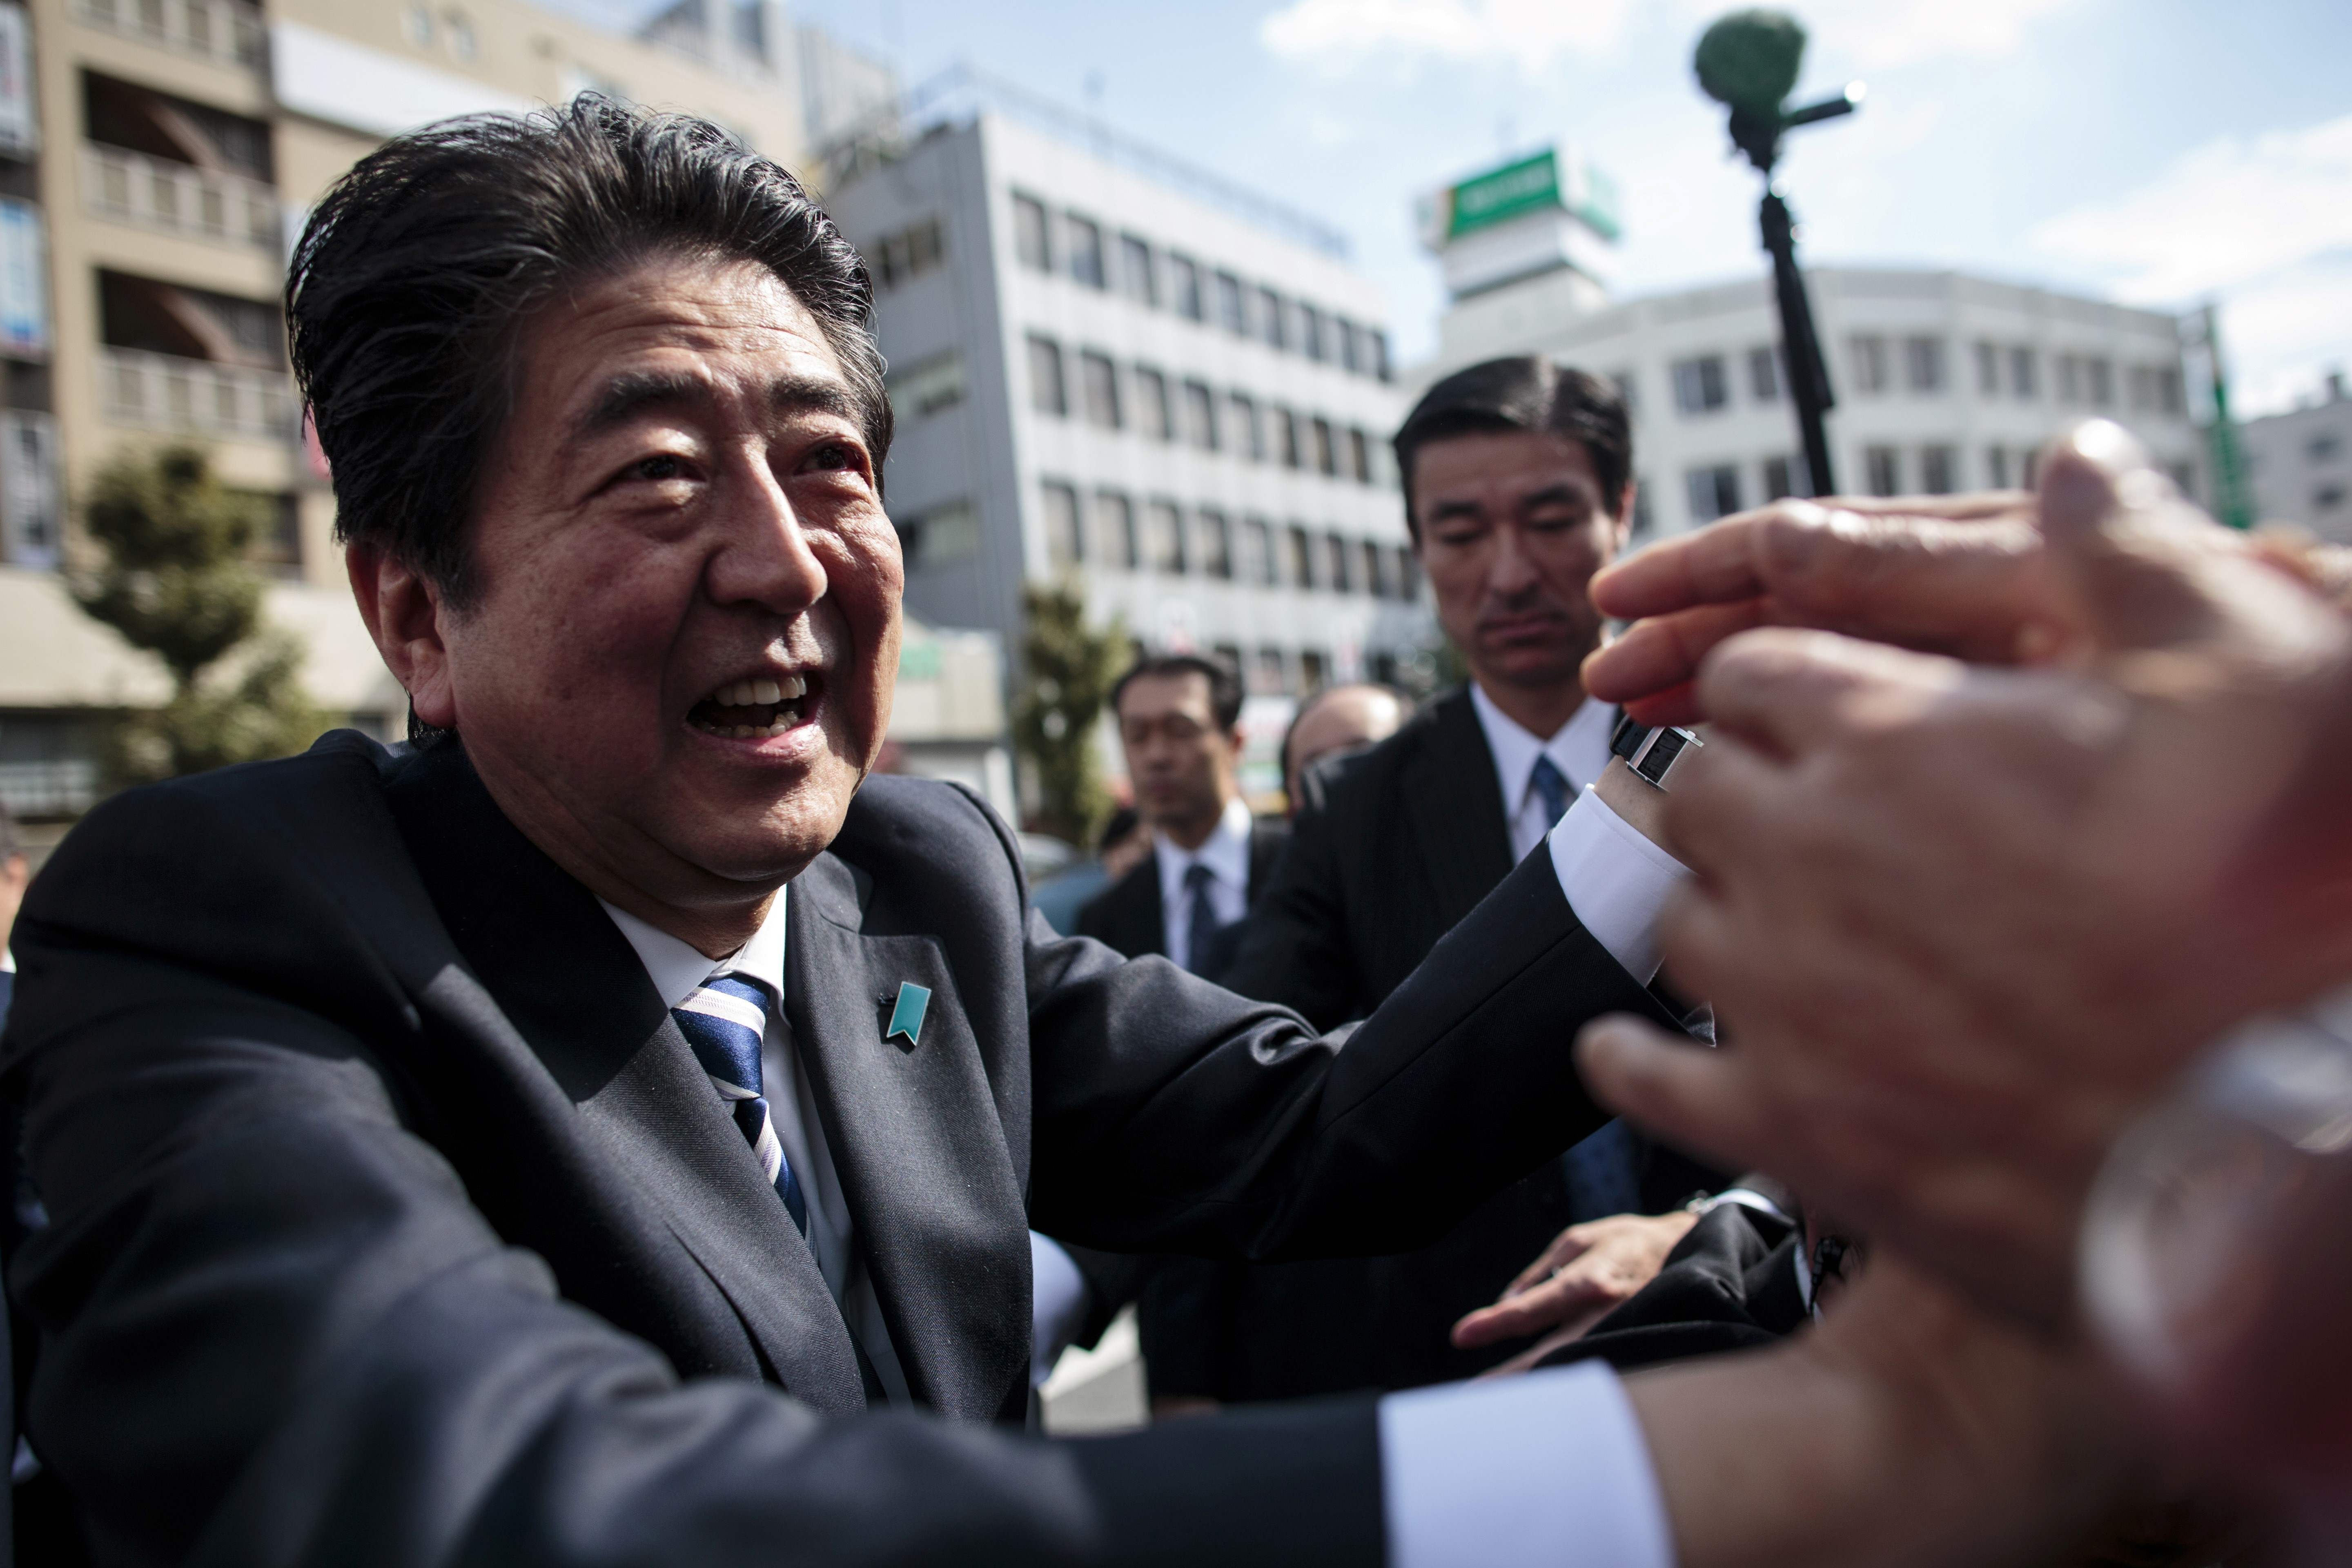 North Korea crisis gives boost to Japanese Prime Minister Shinzo Abe before election